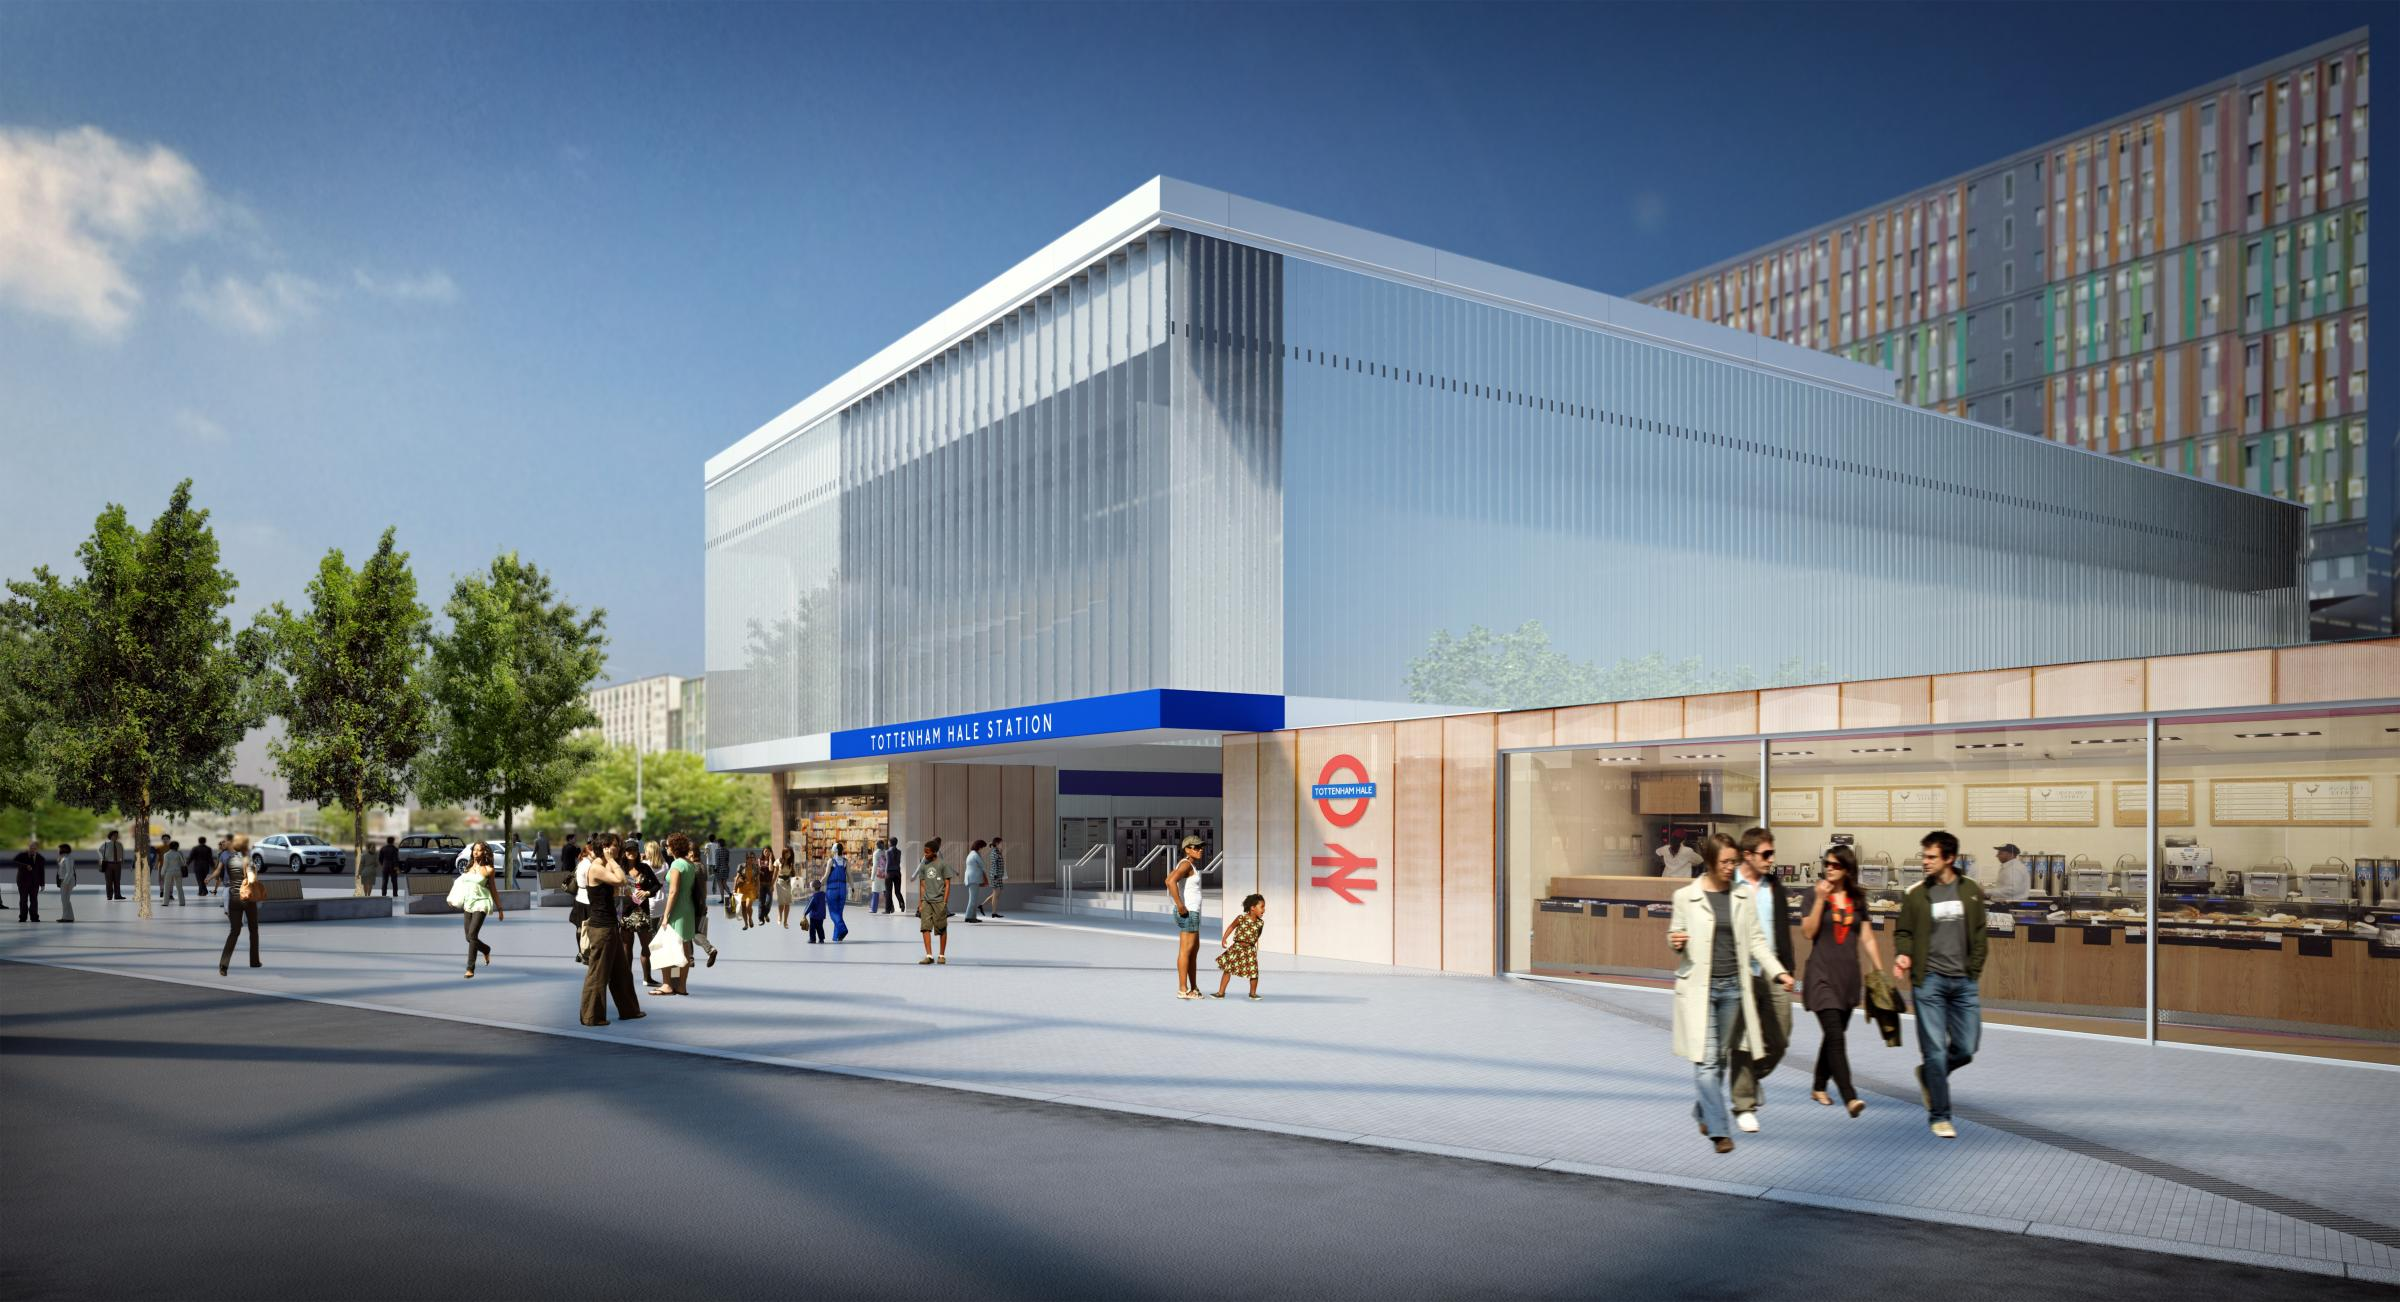 An artist impression of what Tottenham Hale Station will look like once it has been redeveloped